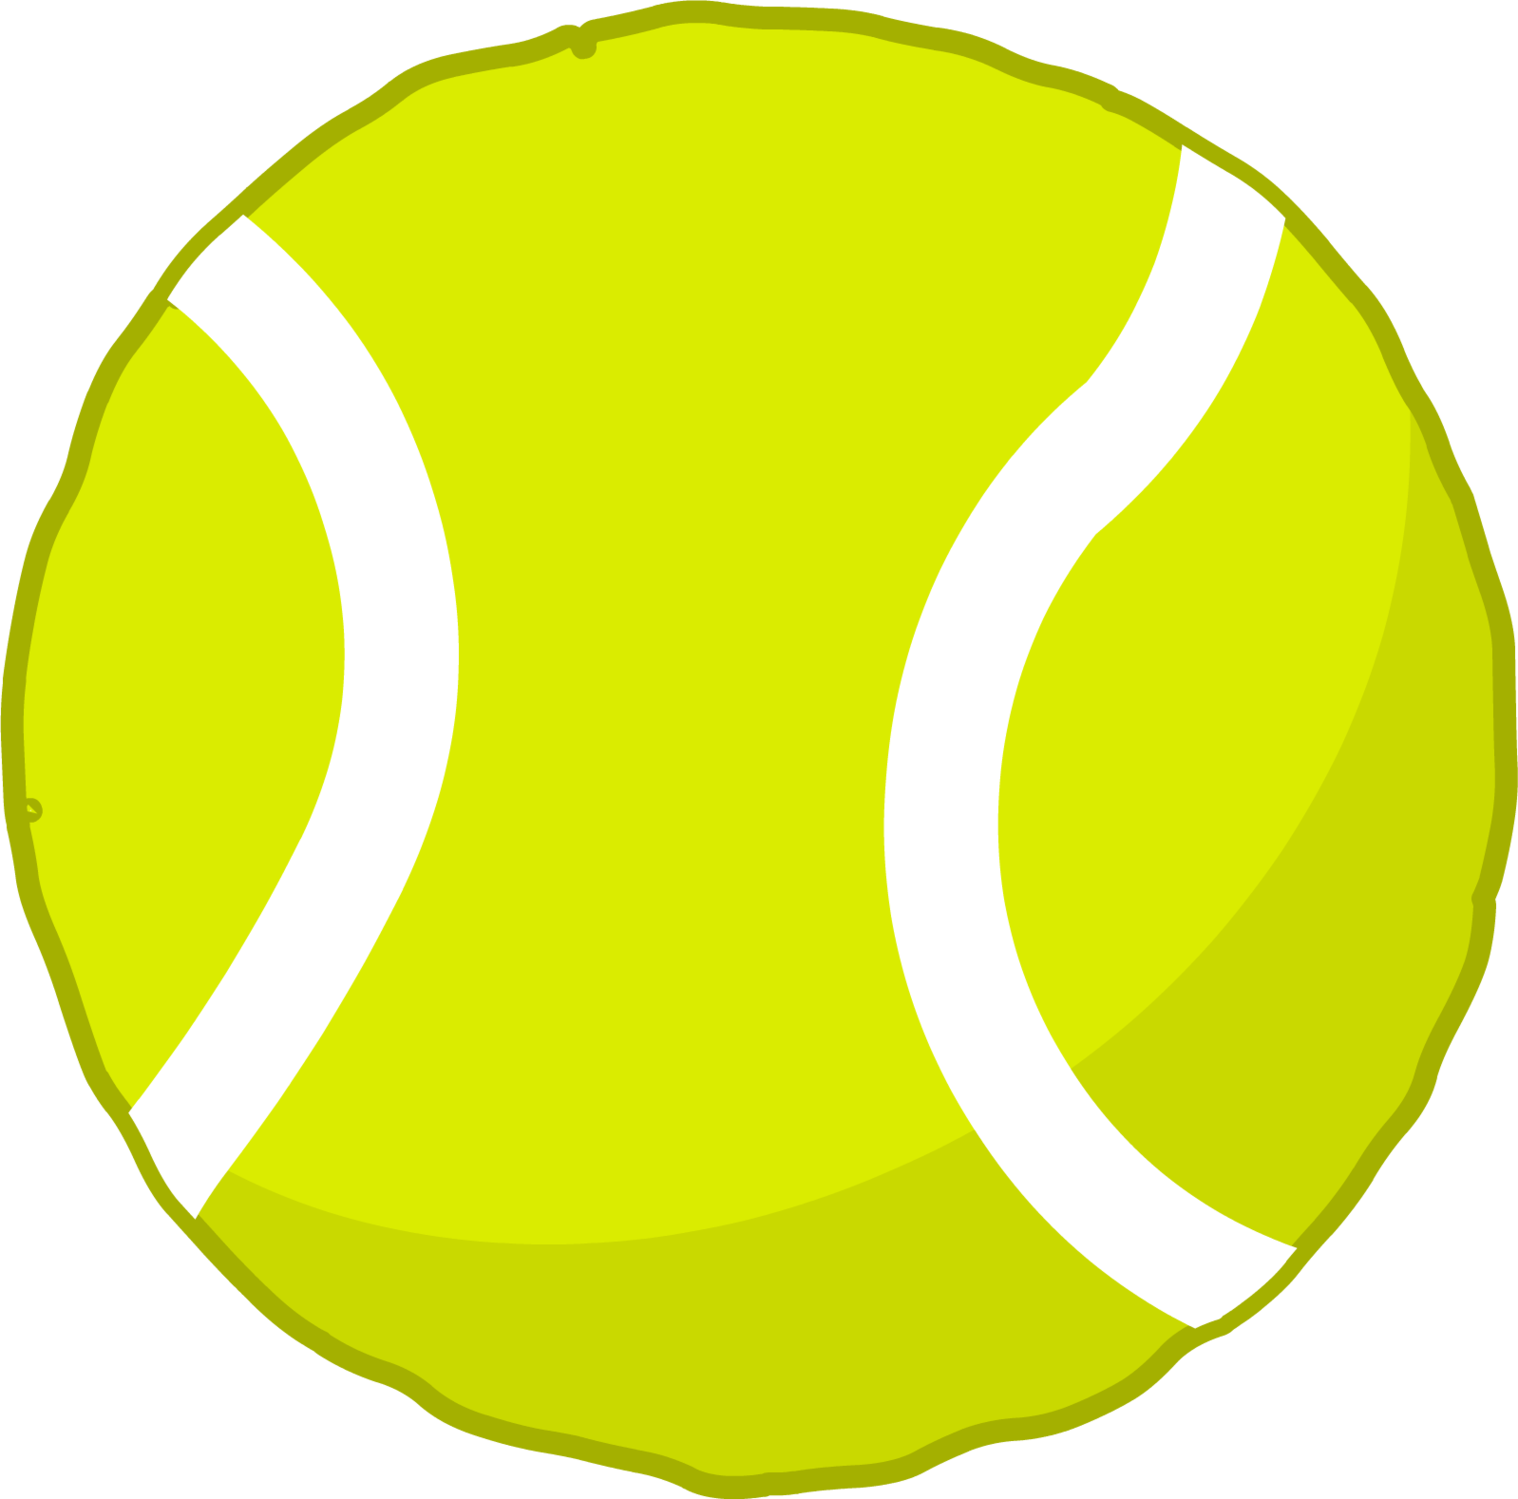 3ds tennis ball clipart.